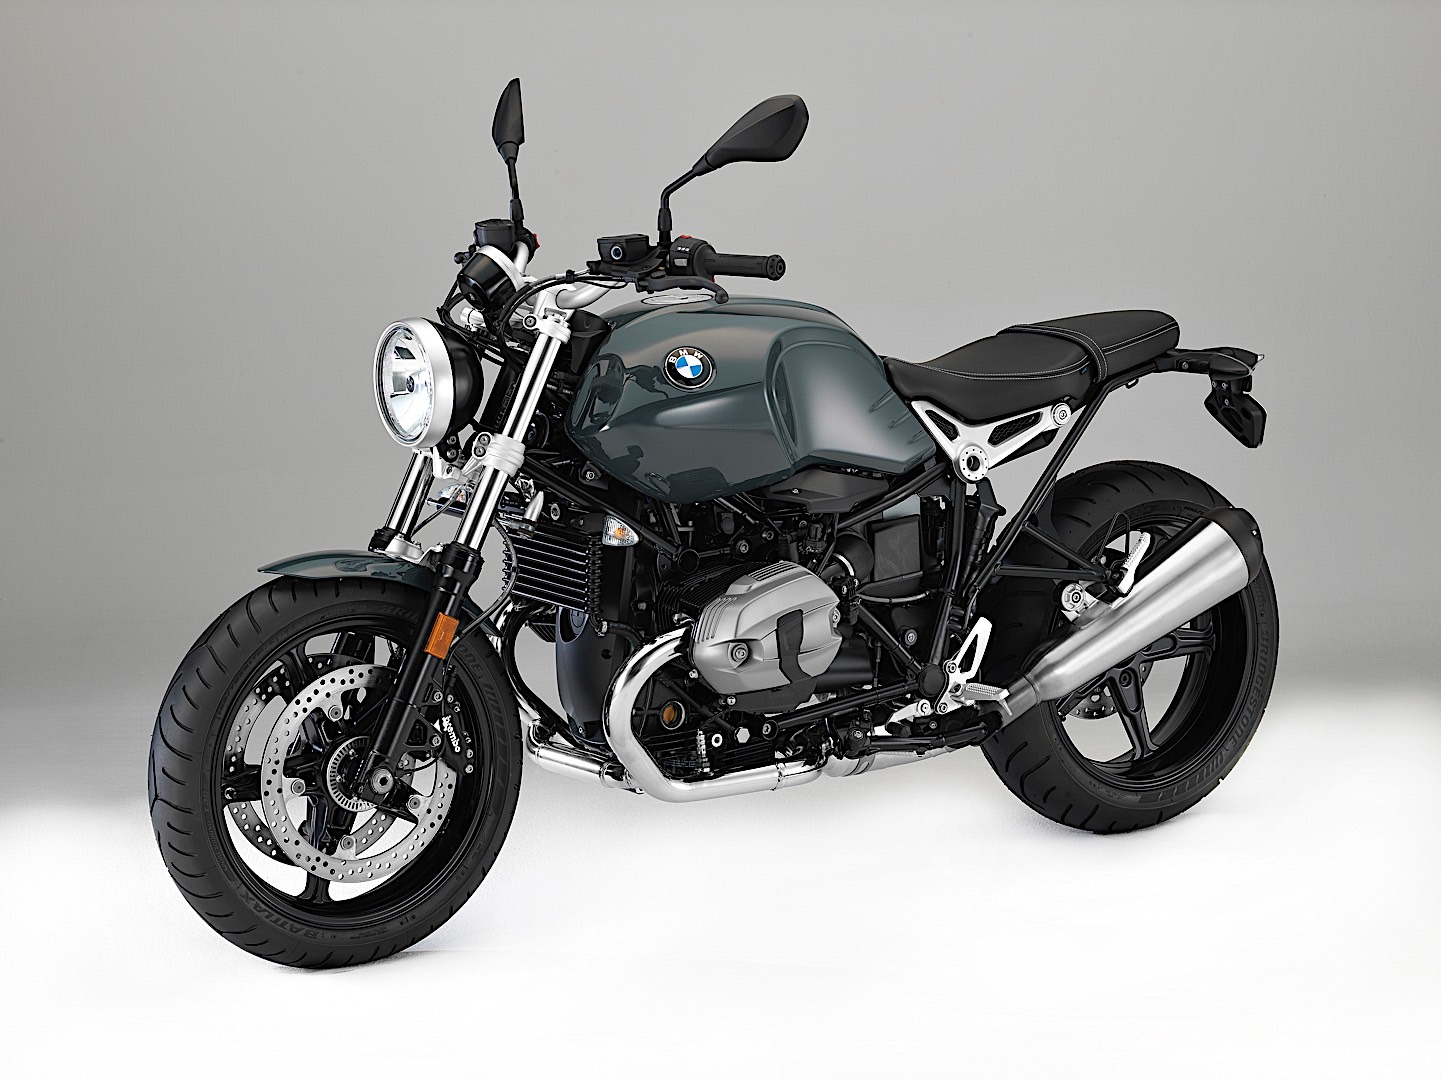 Bmw Motorrad U S Releases 2017 Models Pricing And Availability